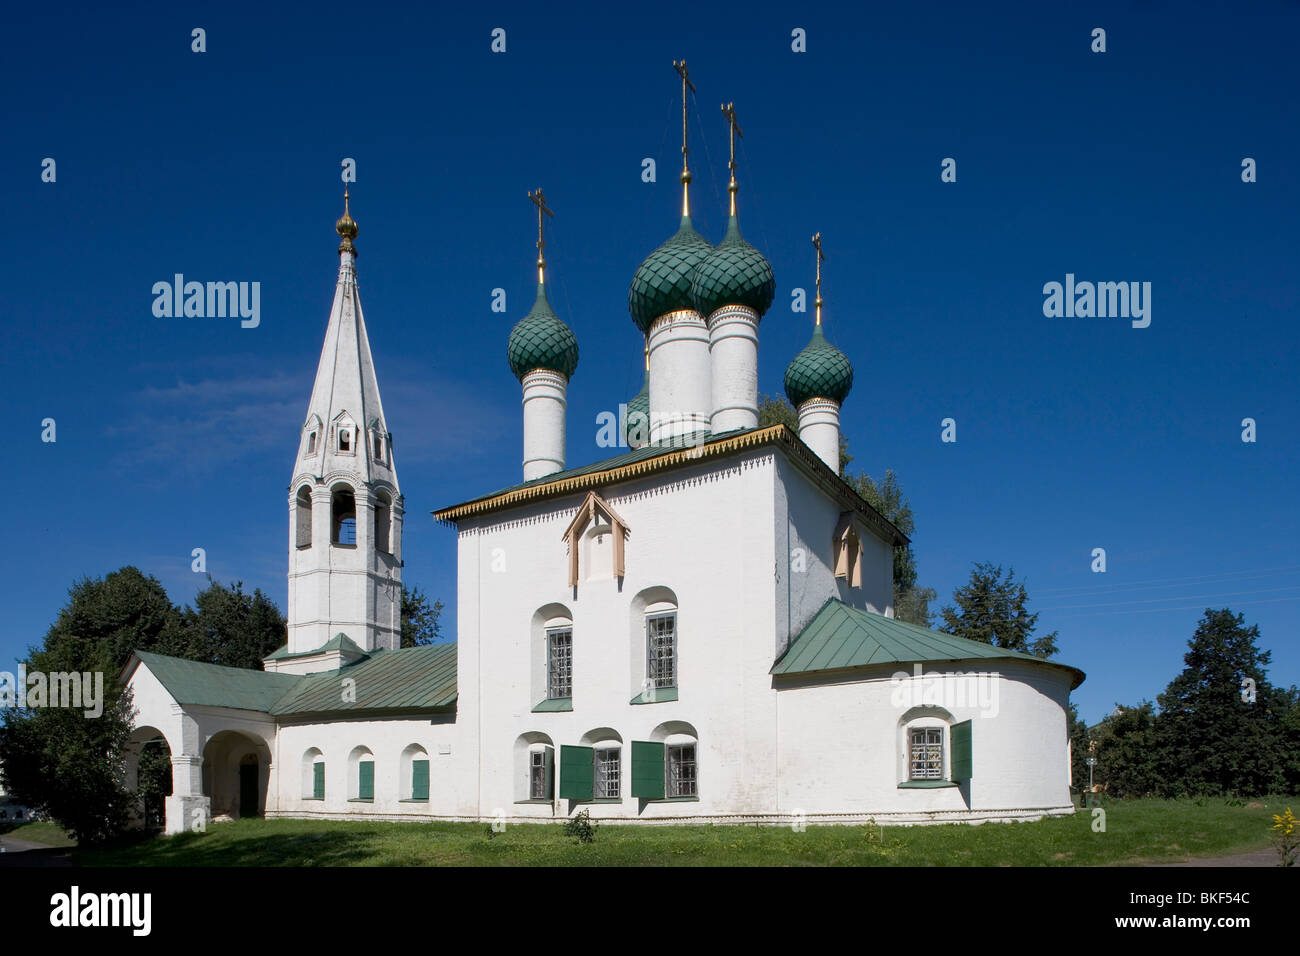 Russia,Golden Ring ,Yaroslavl,1695,Church of St Nicholas 'at the Timber Town' - Stock Image